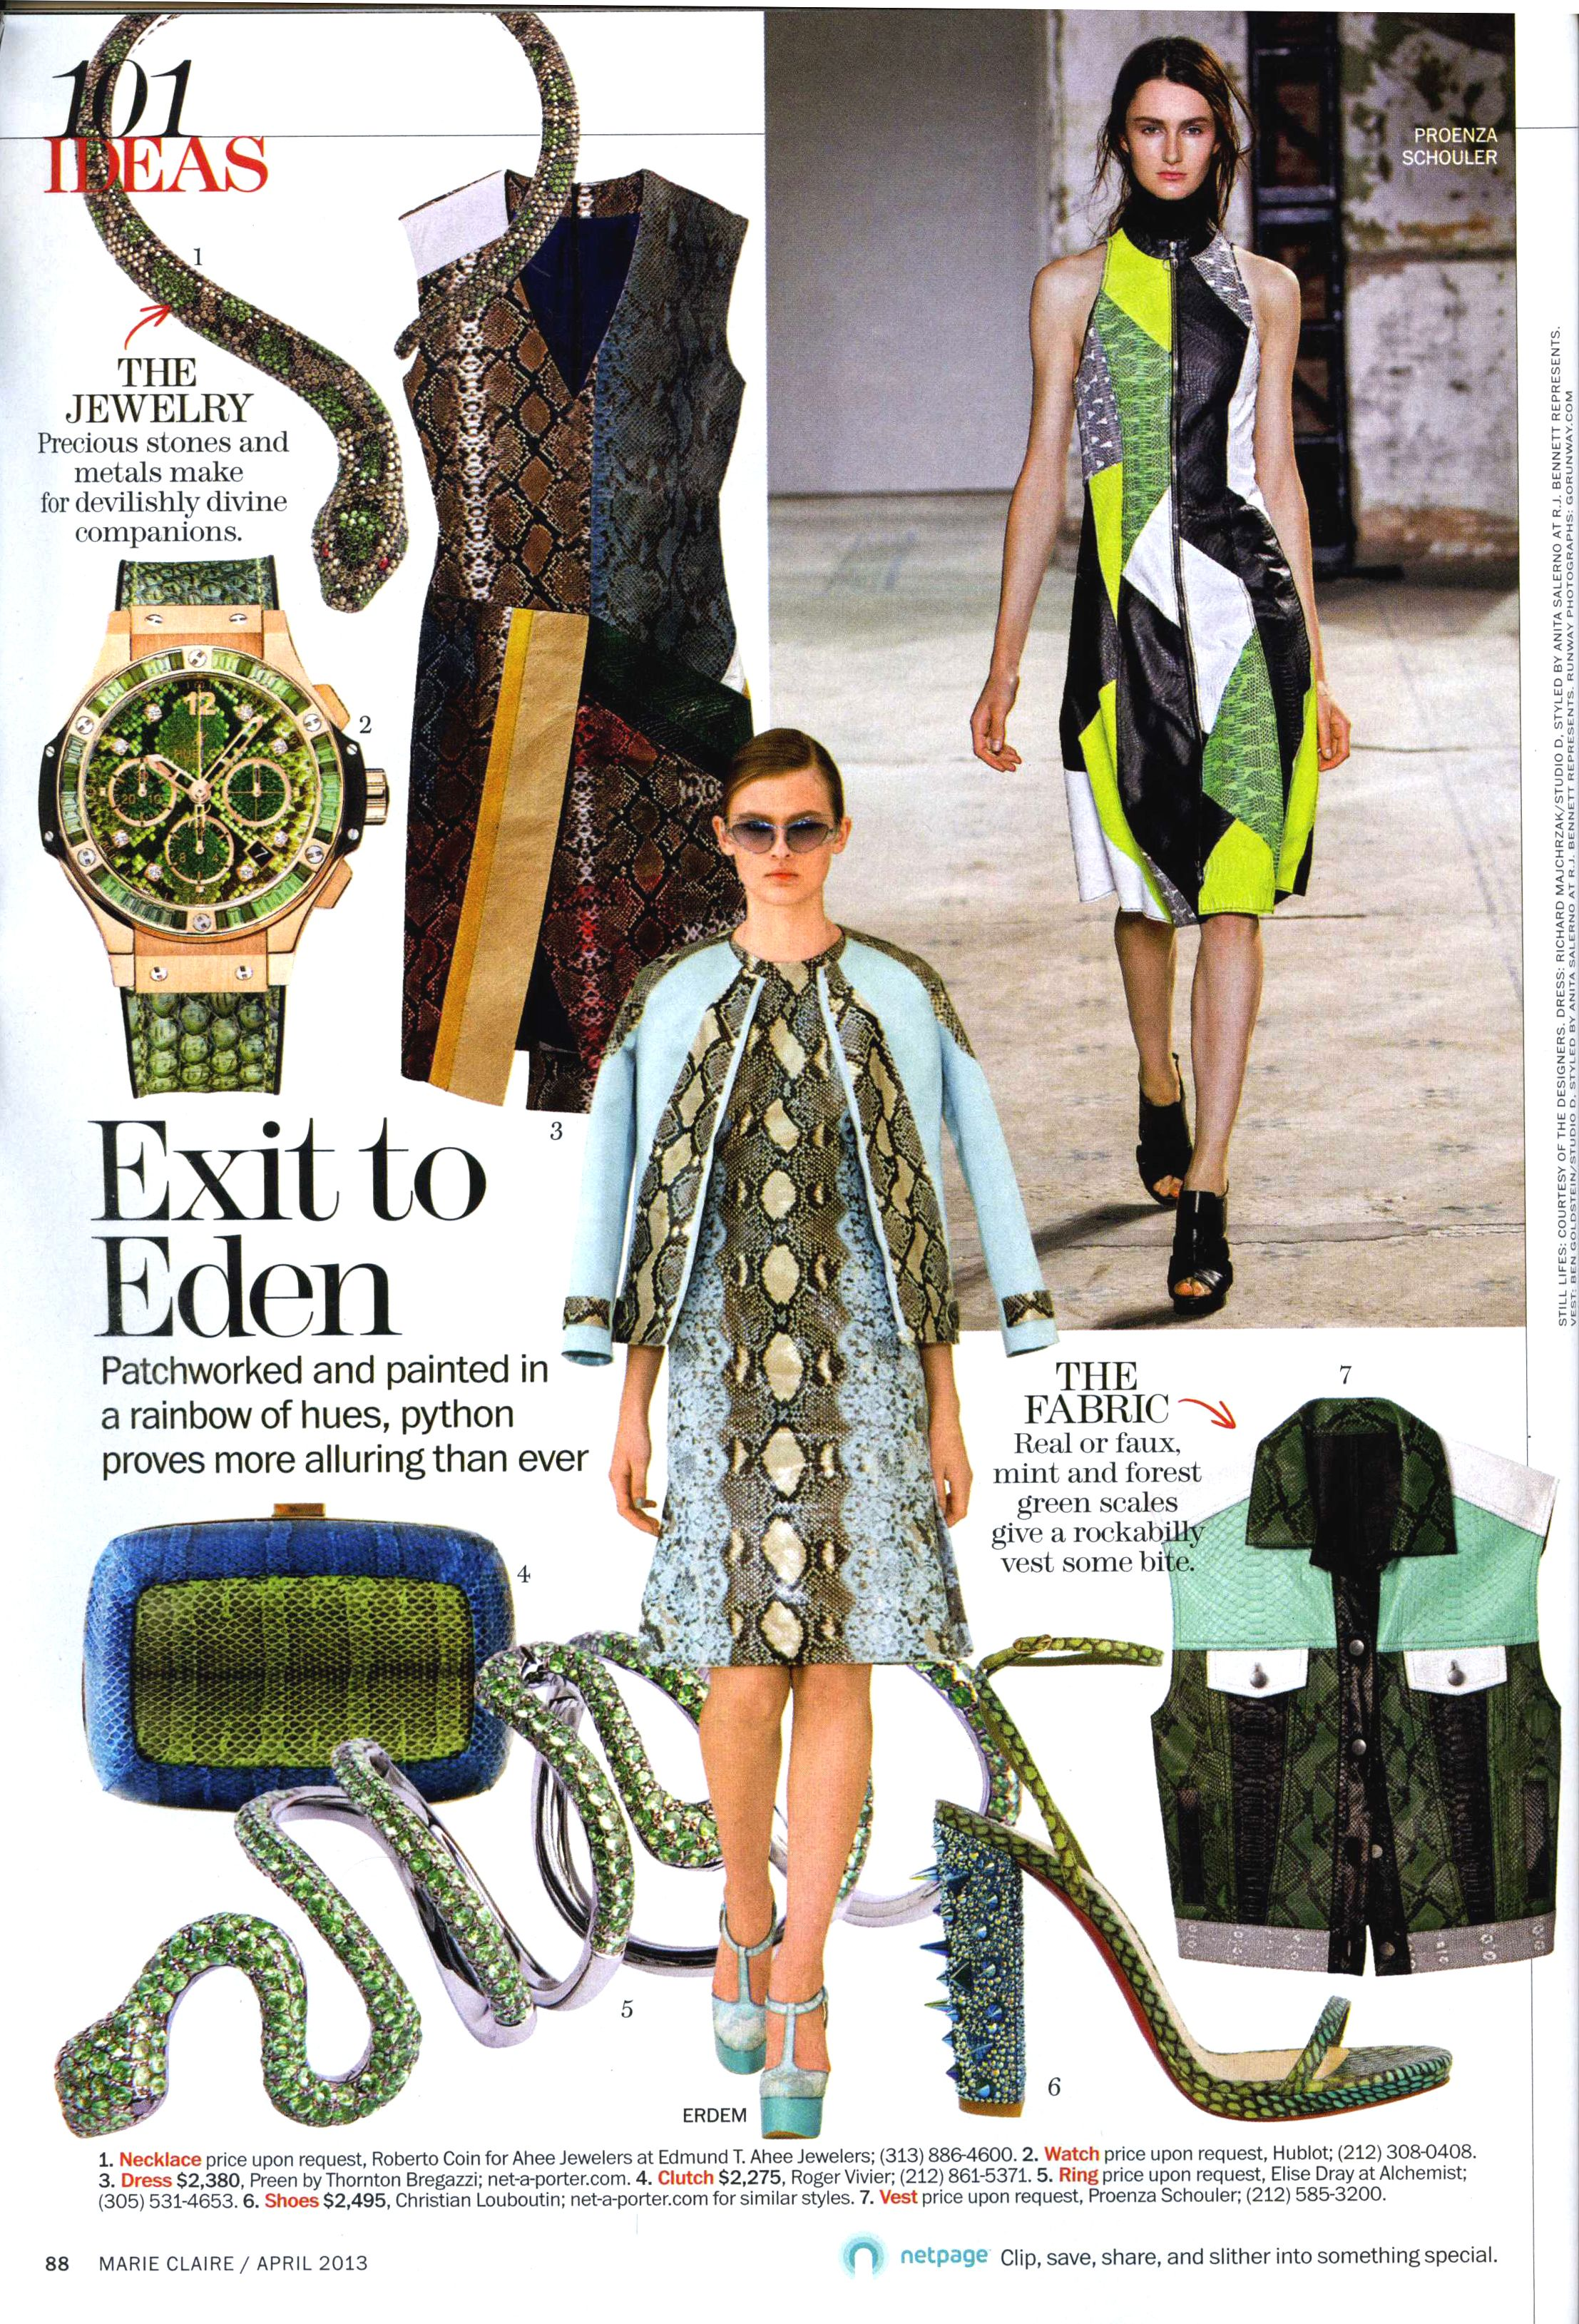 Roberto Coin for Edmund T. Ahee Jewelers Limited Edition Cobra Neckalce featured in the April issue of Marie Claire.